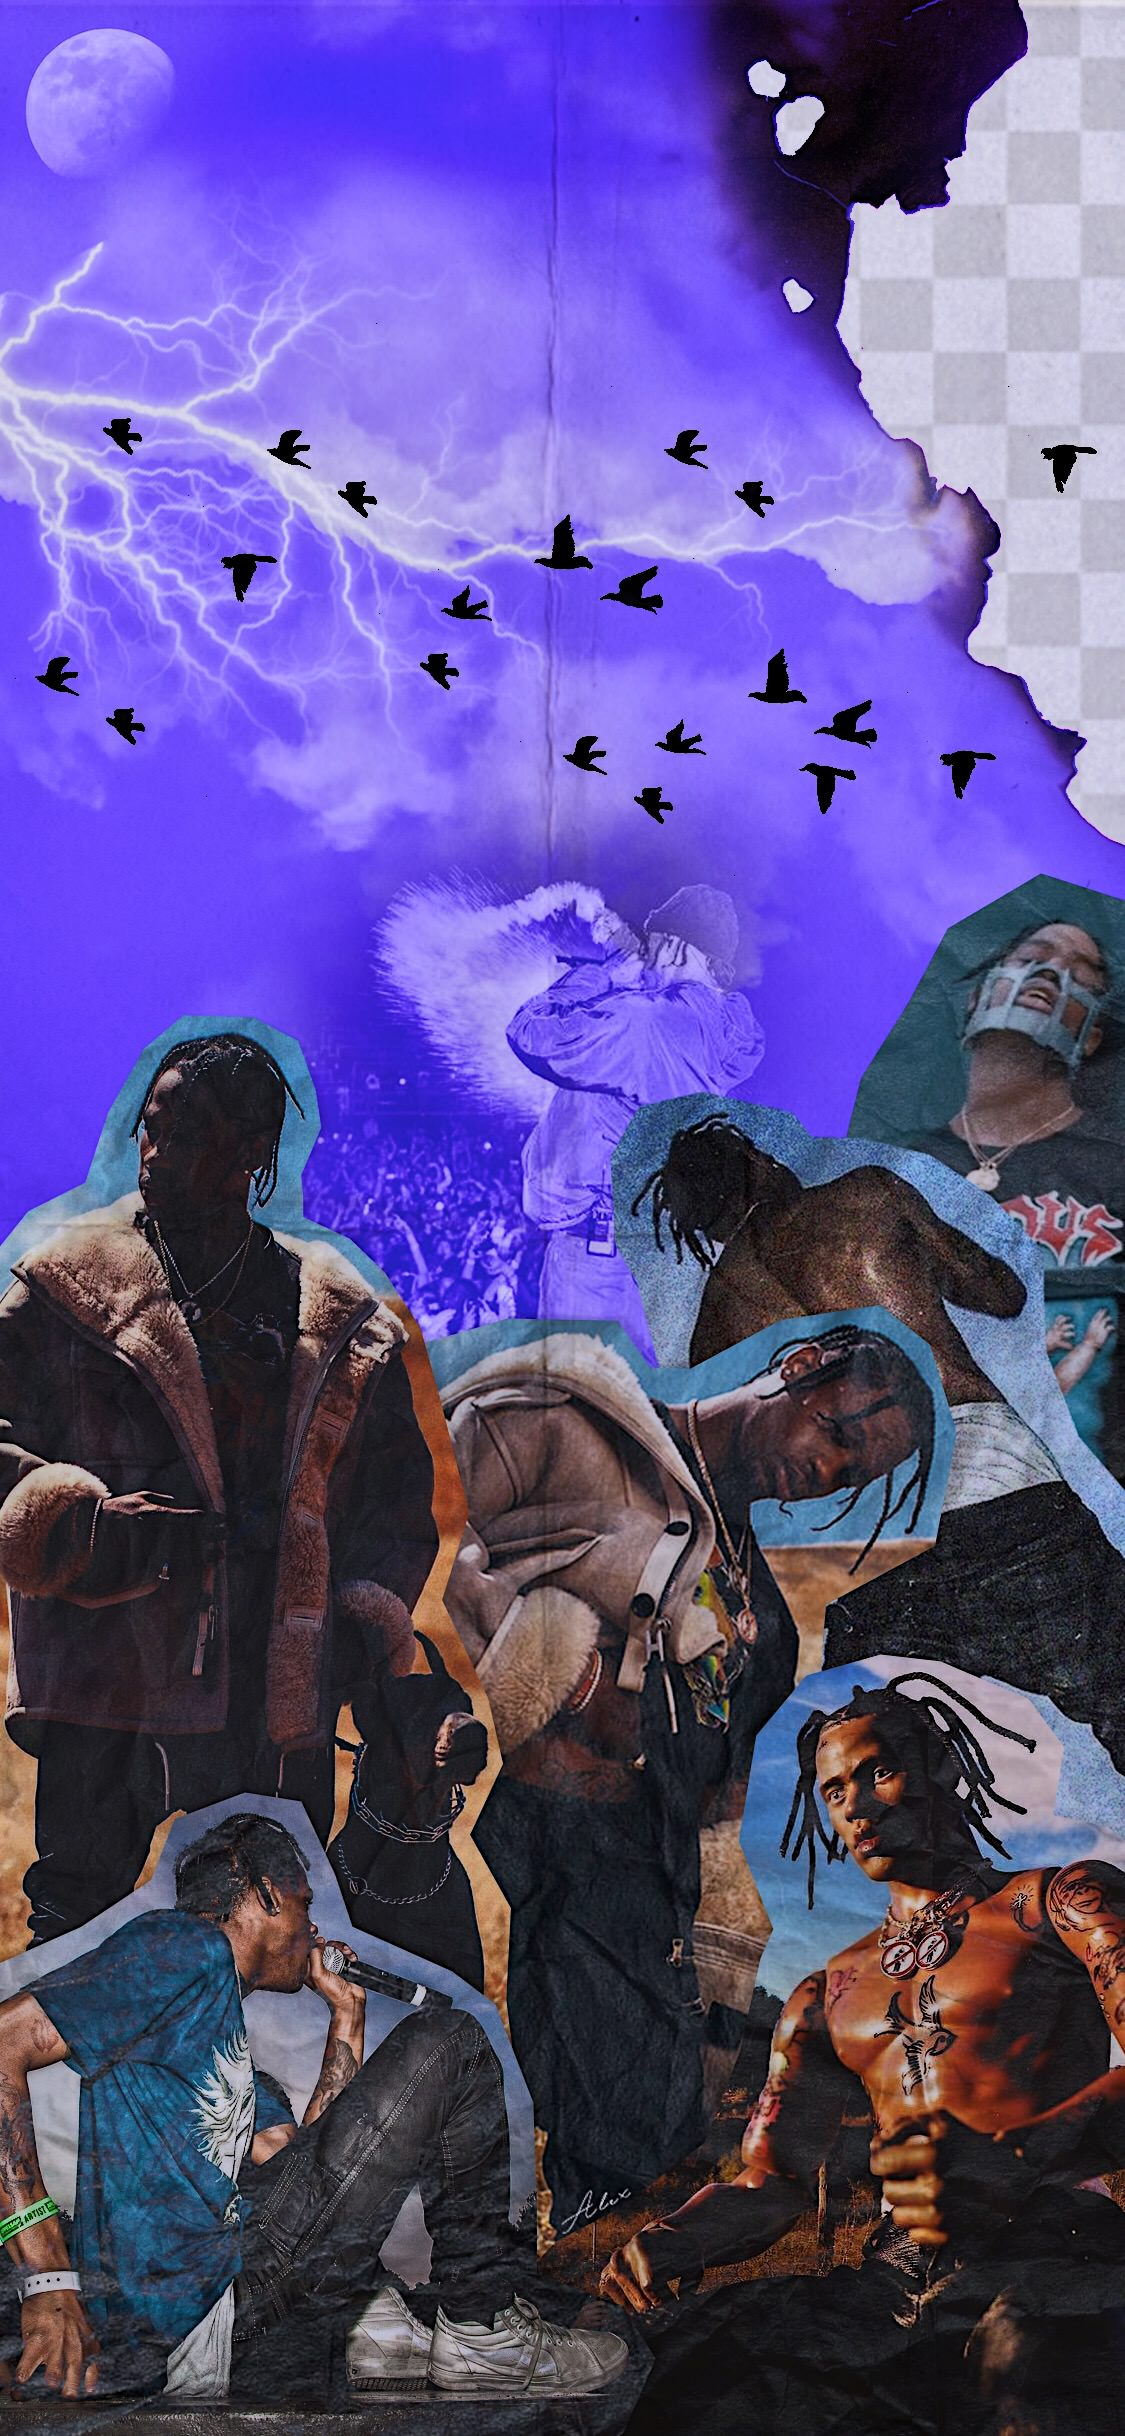 download art] Days Before Rodeo themed wallpaper travisscott 1125x2436